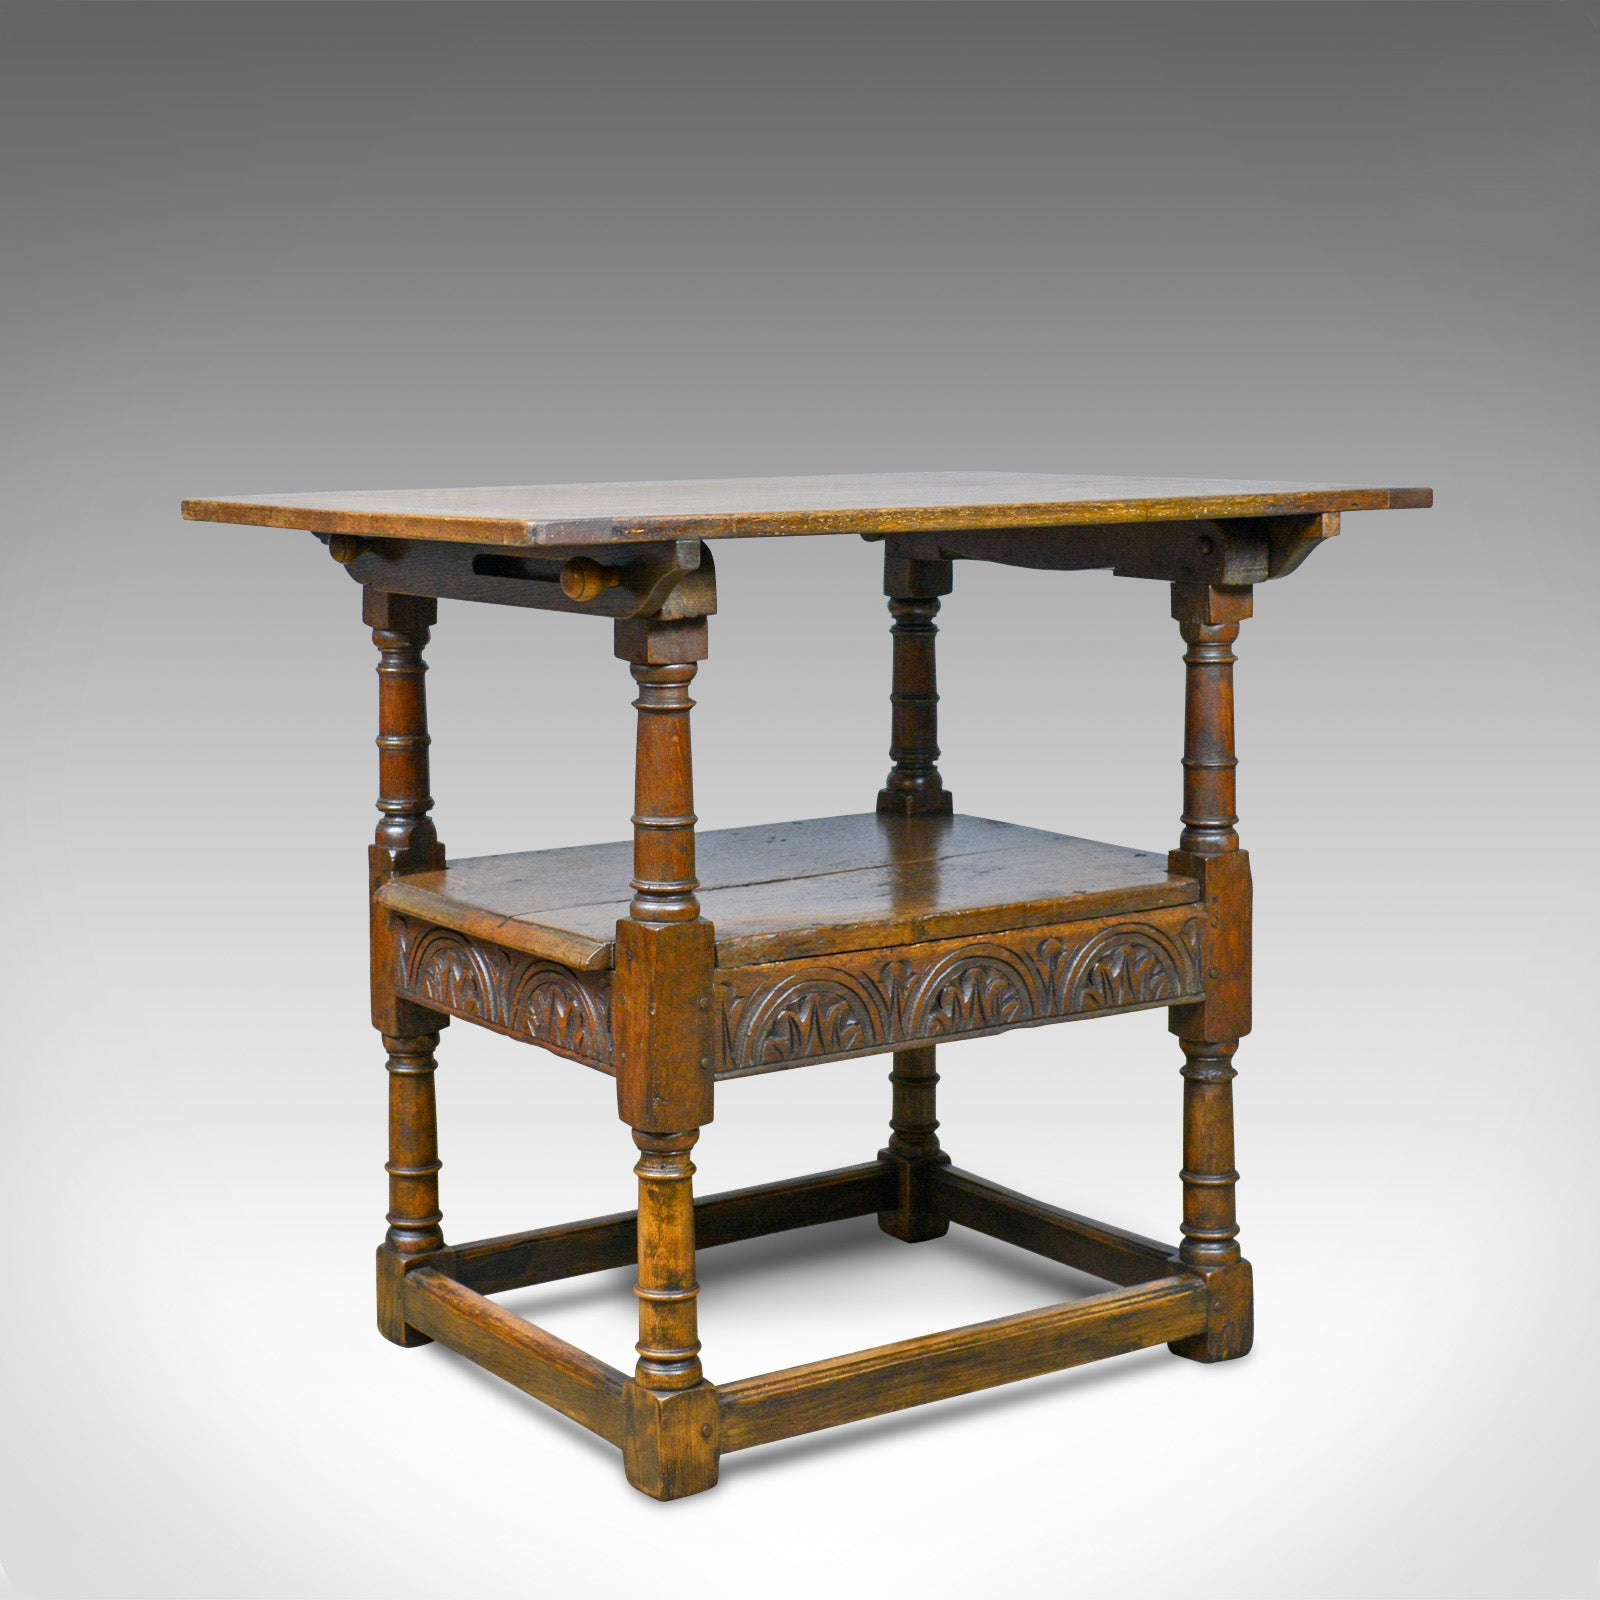 Antique Monk S Bench Metamorphic Table Chair English Oak C18th And Later Ebay